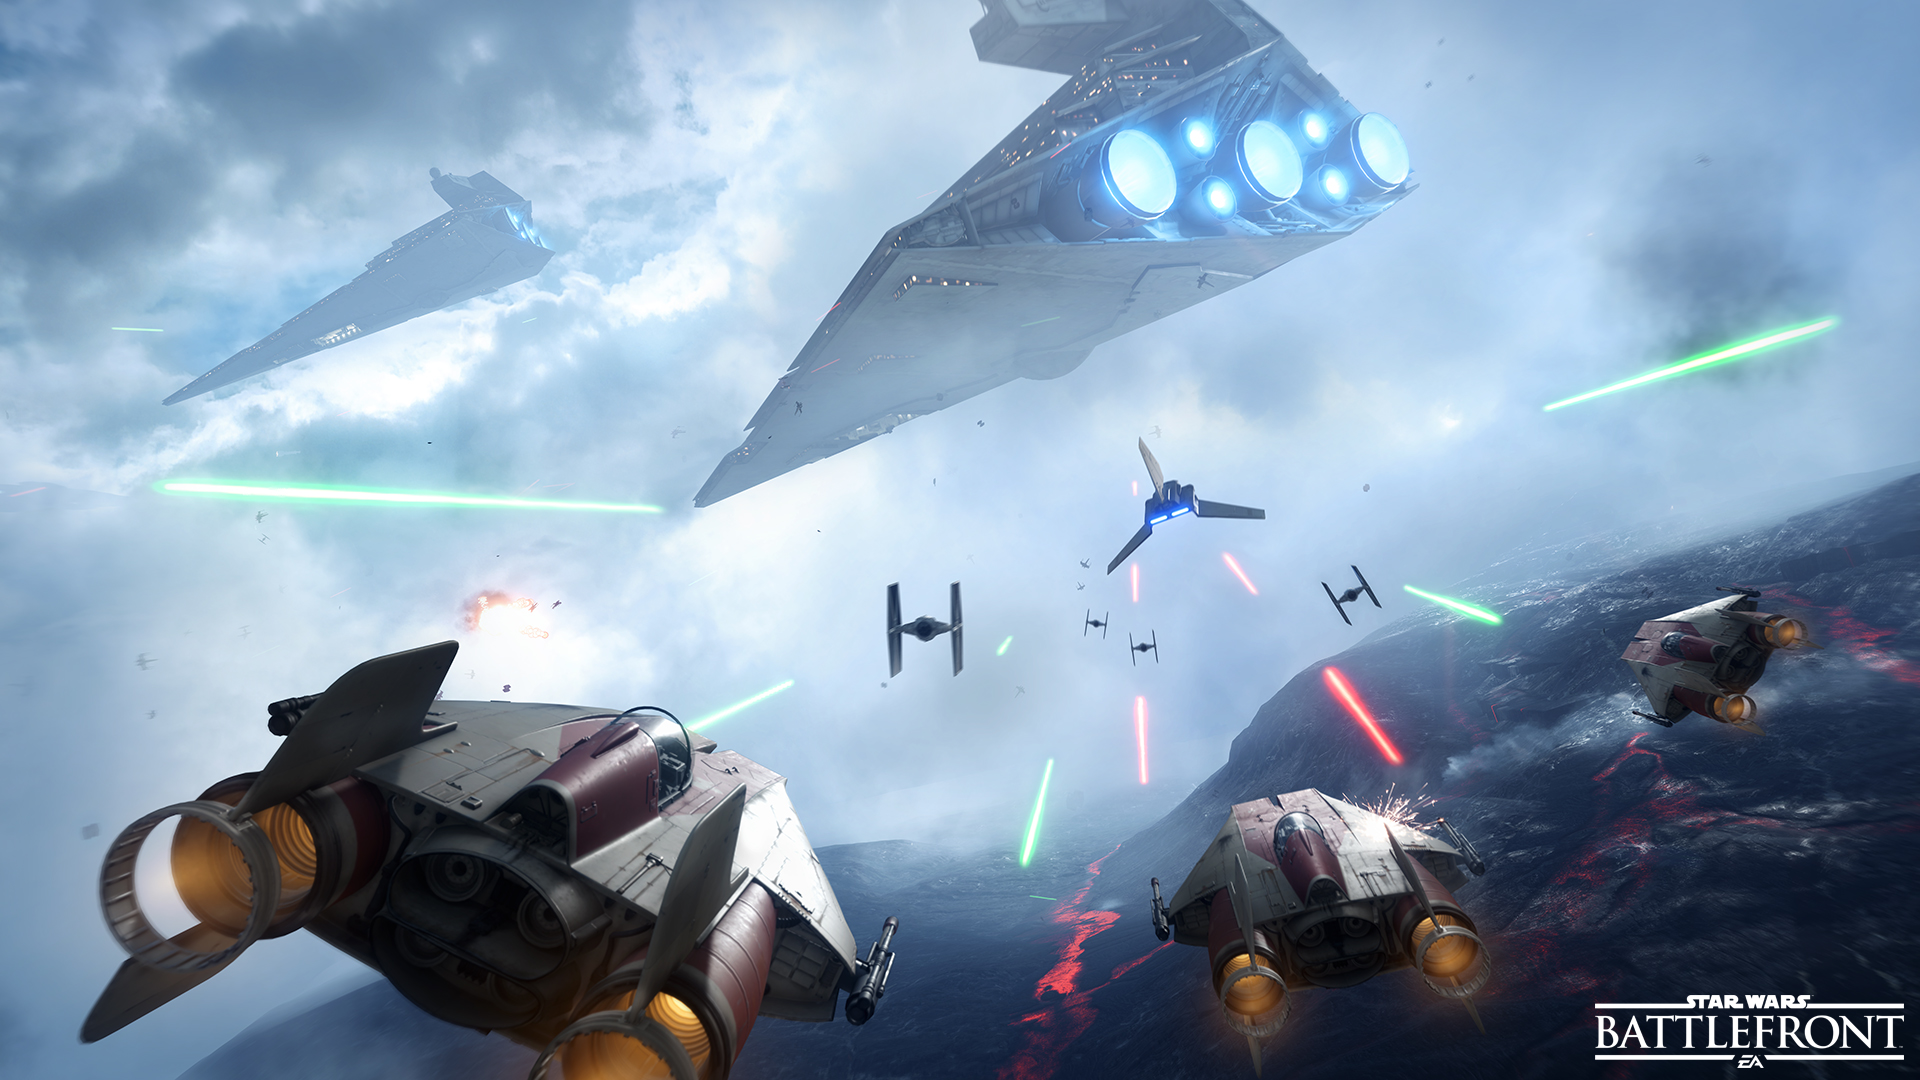 Star Wars Battlefront How To Unlock All The Diorama Figurines Usgamer